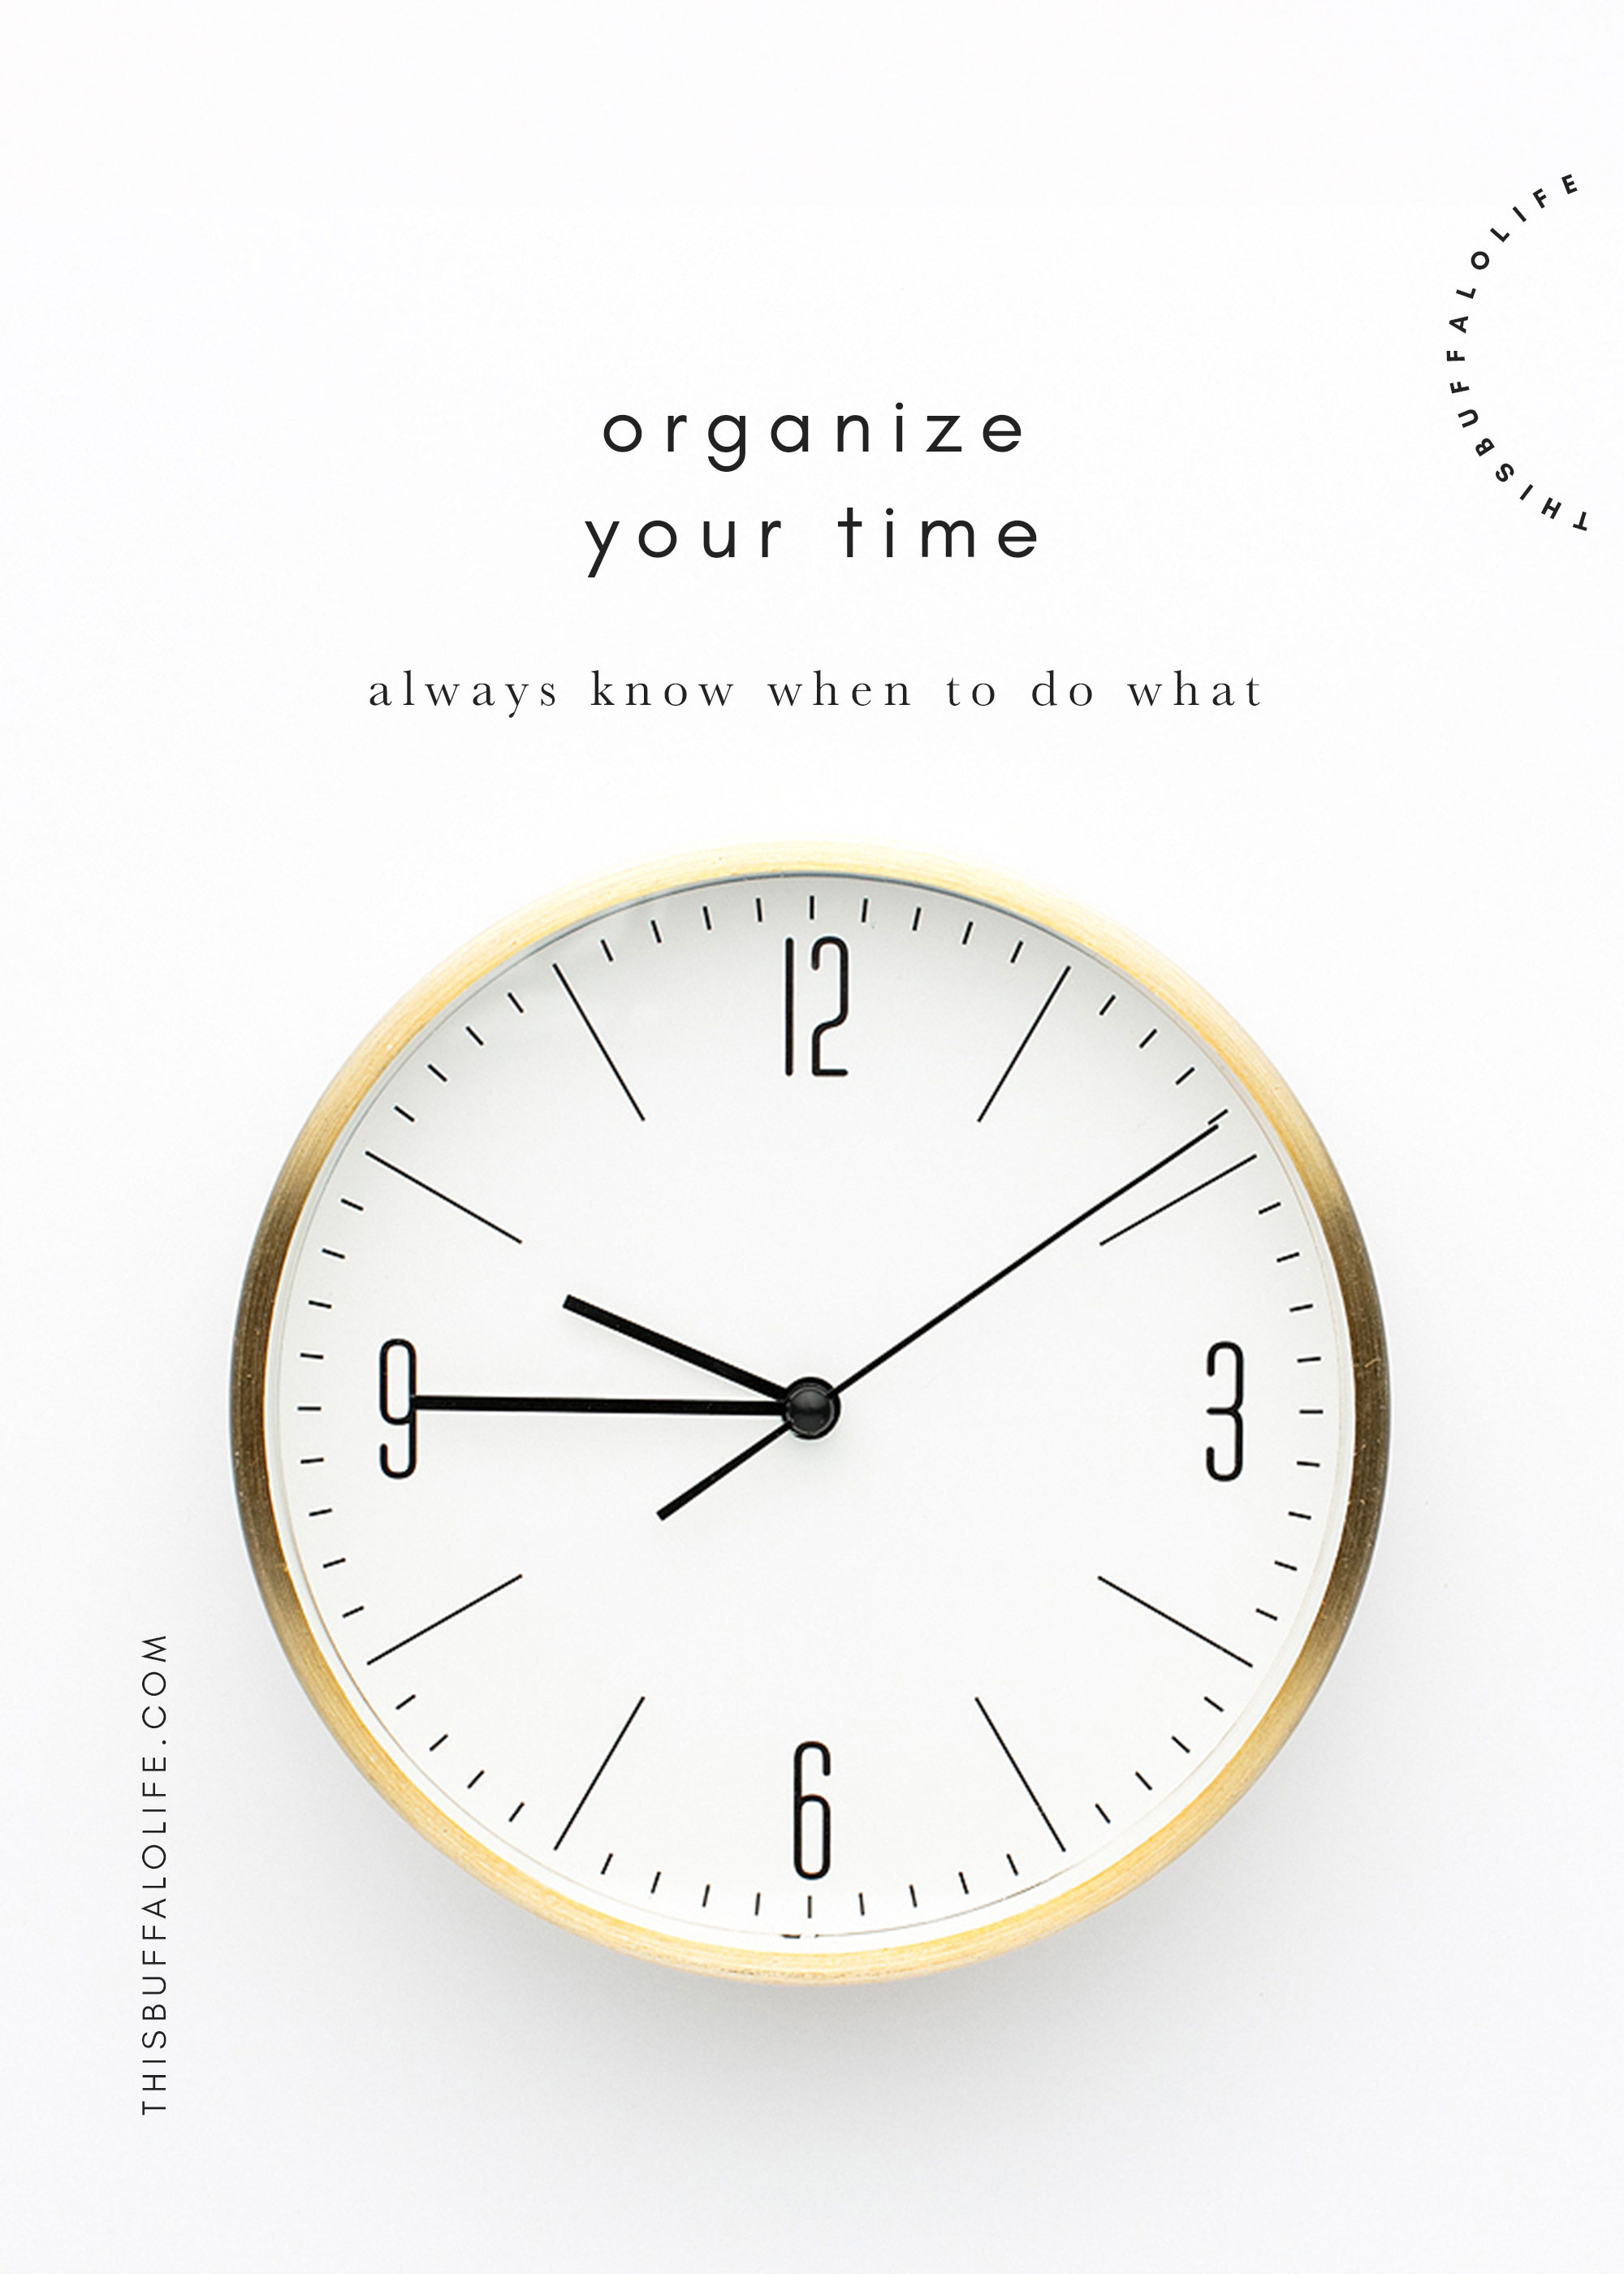 organize-your-time.jpg